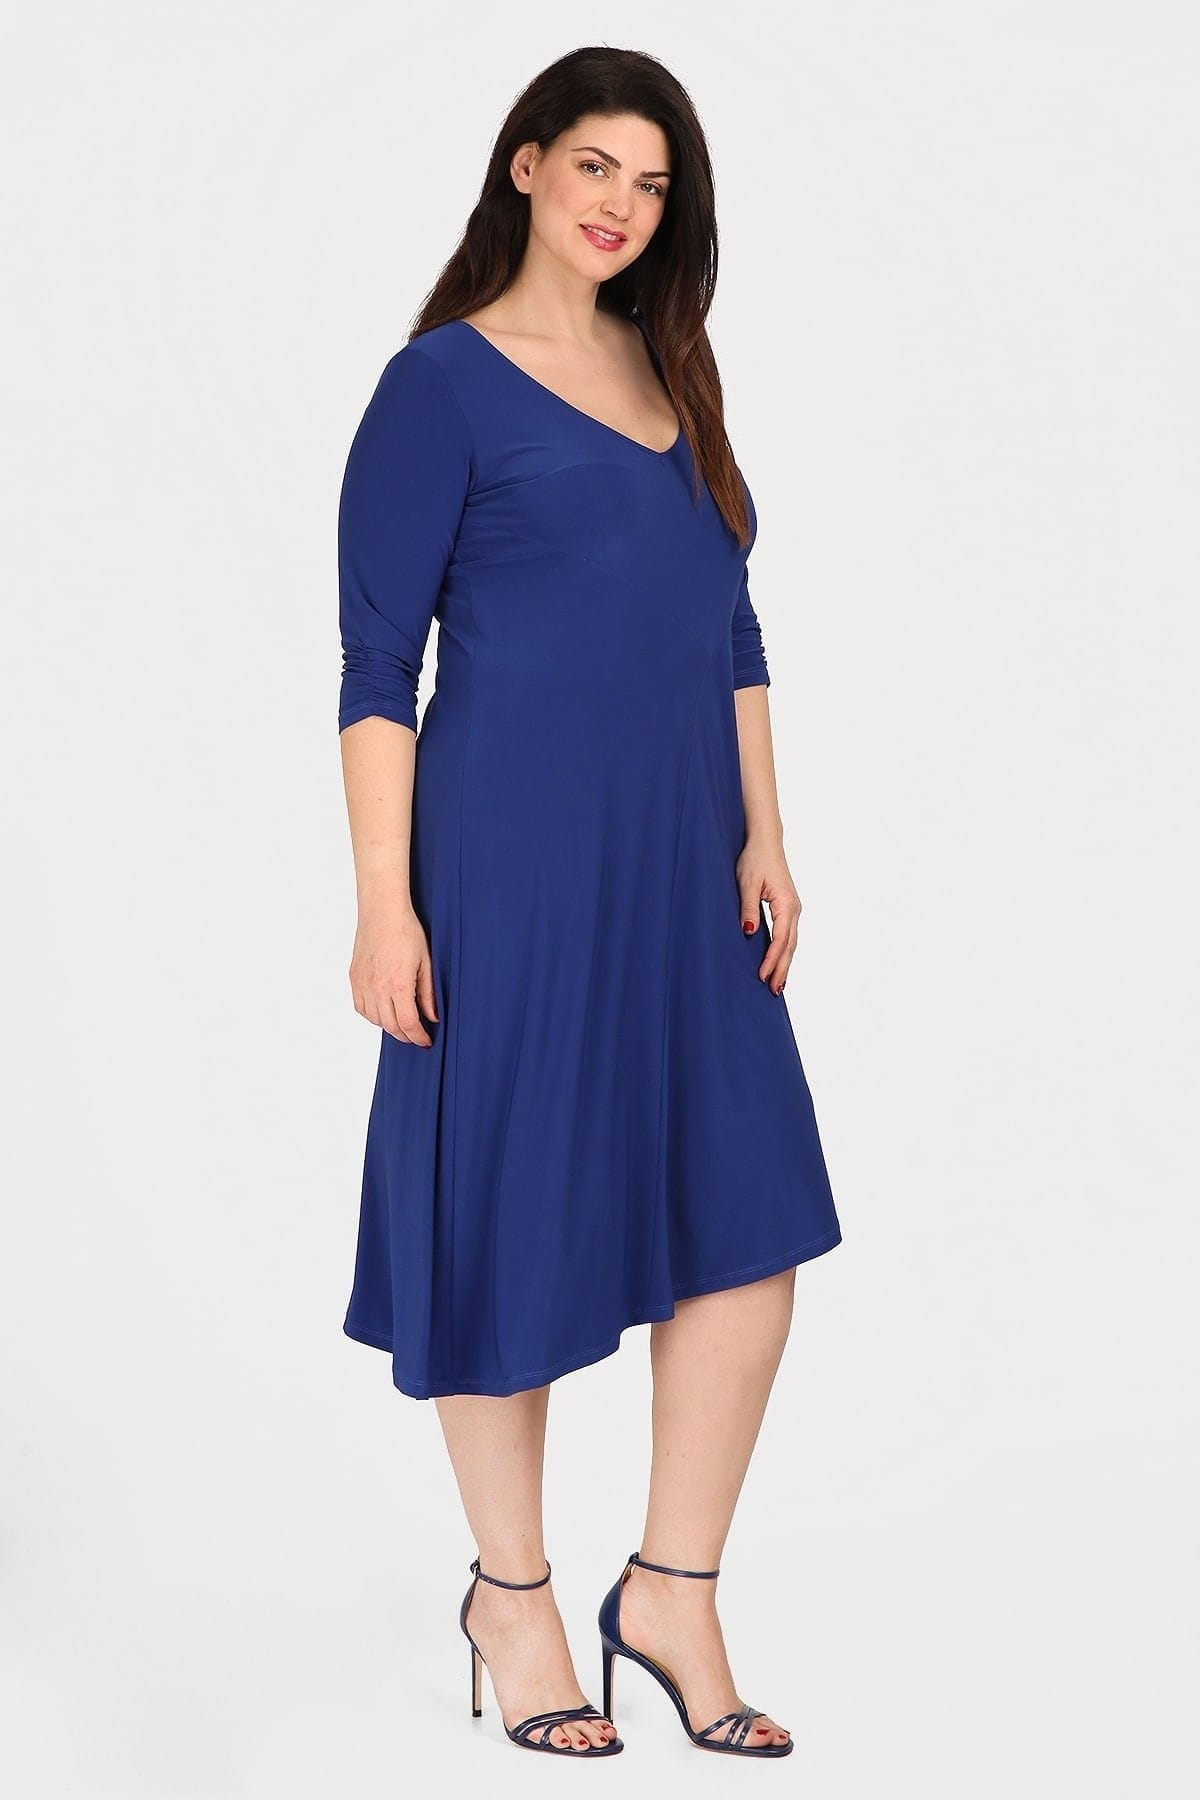 Αsymetrical midi dress from super jersey